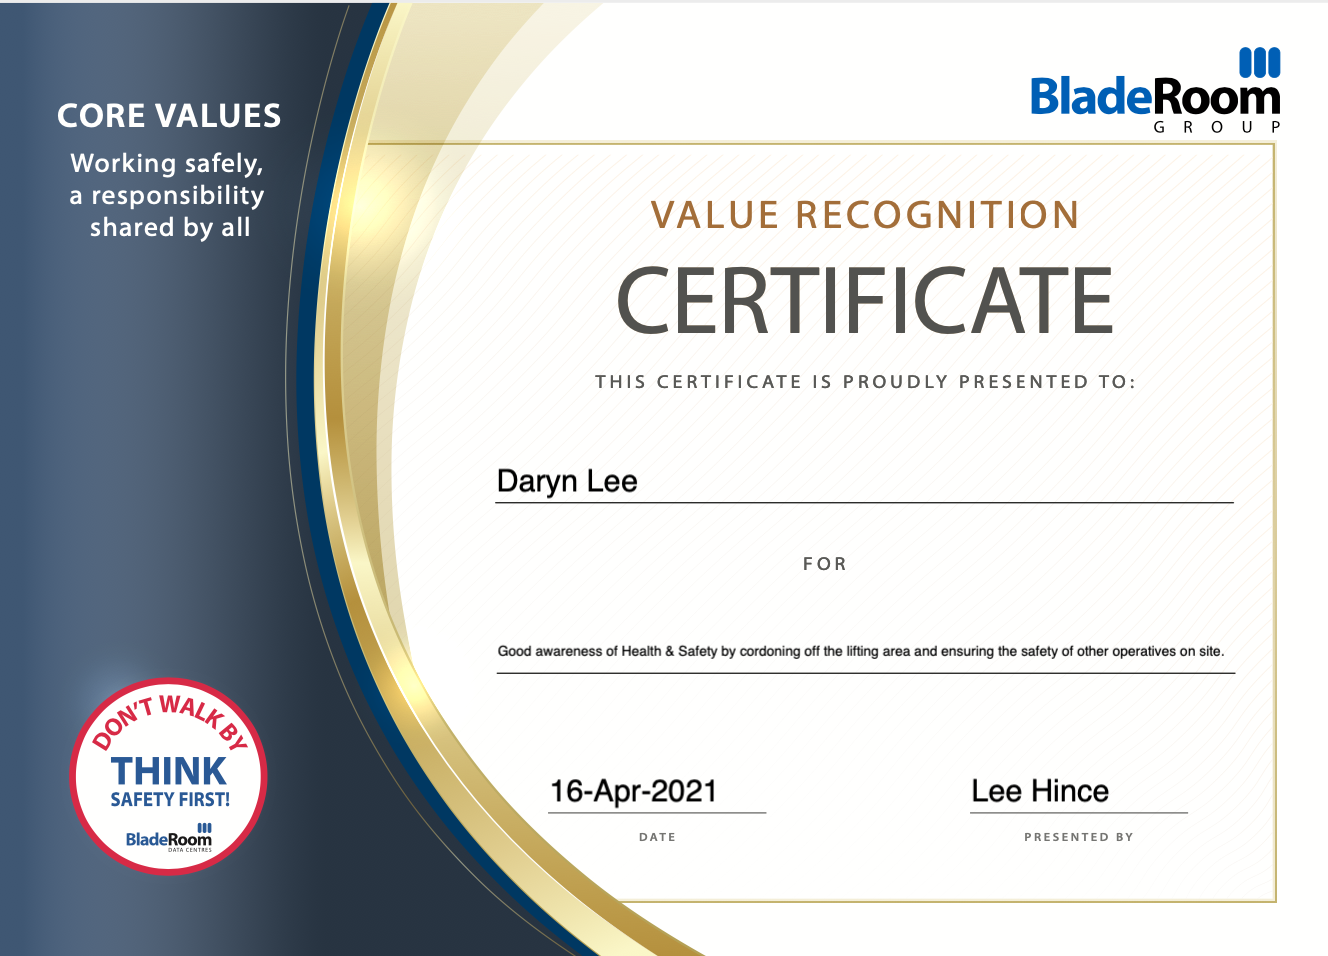 Well Done to Daryn Lee!